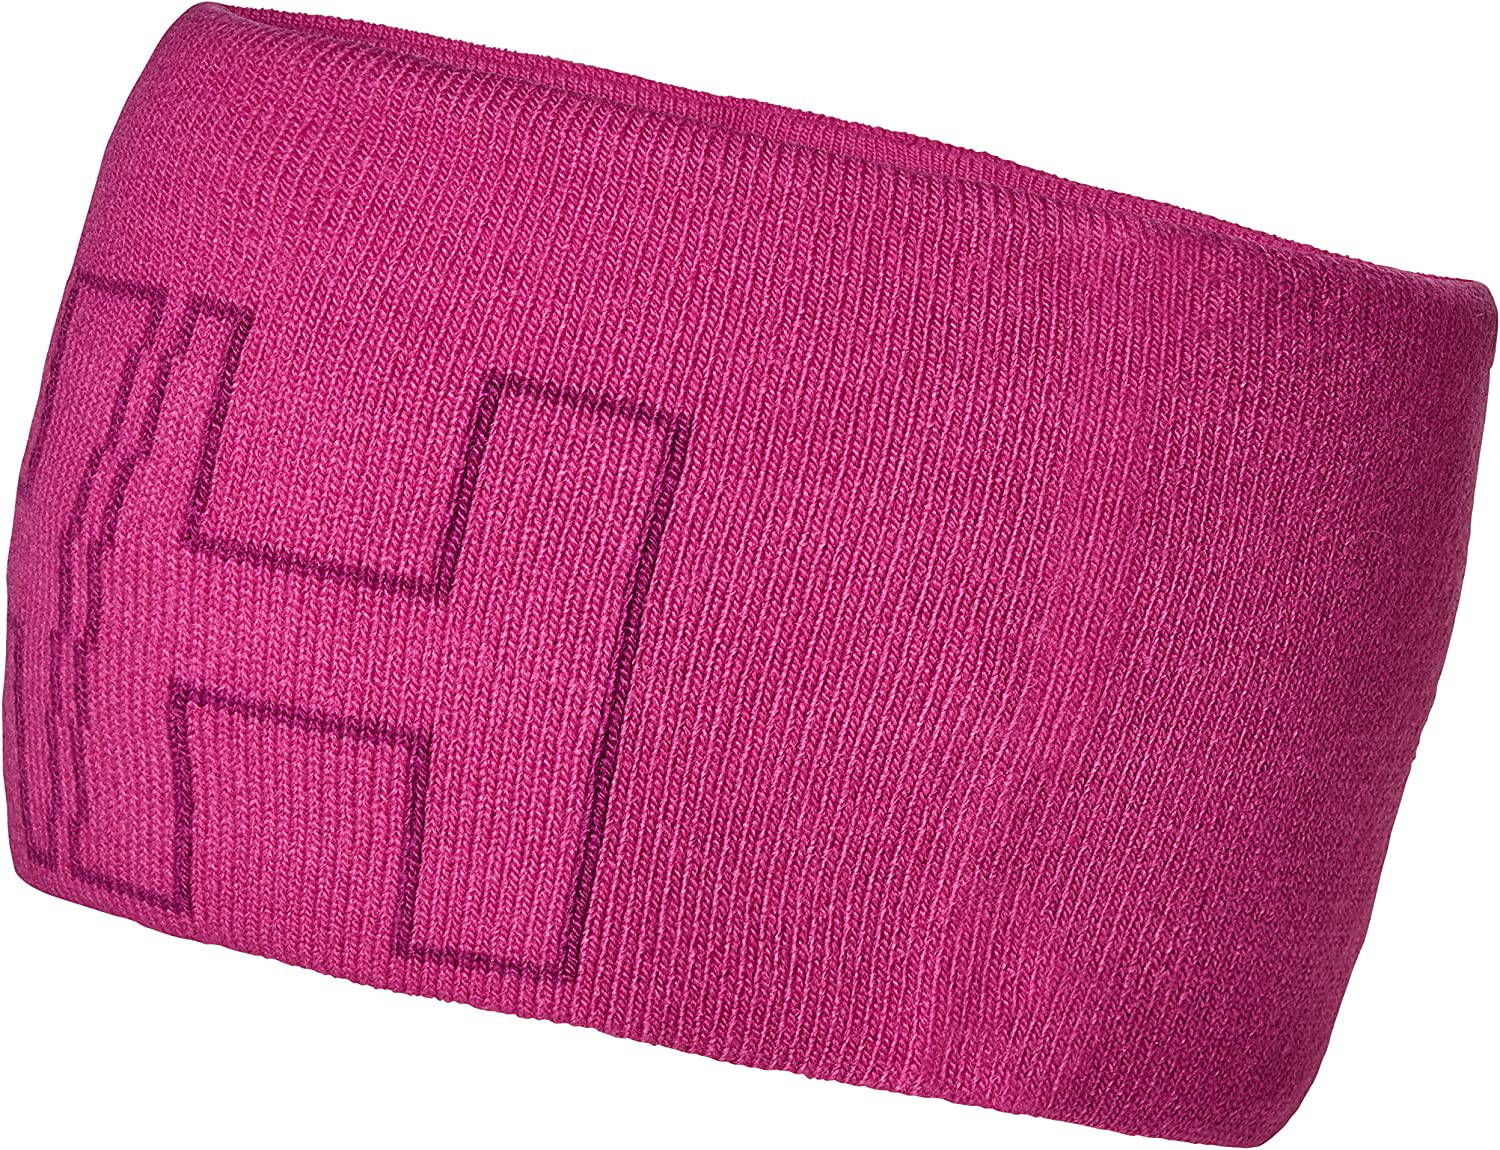 Helly-Hansen Unisex Outline Knitted Hh Iconic Logo Brand Beanie